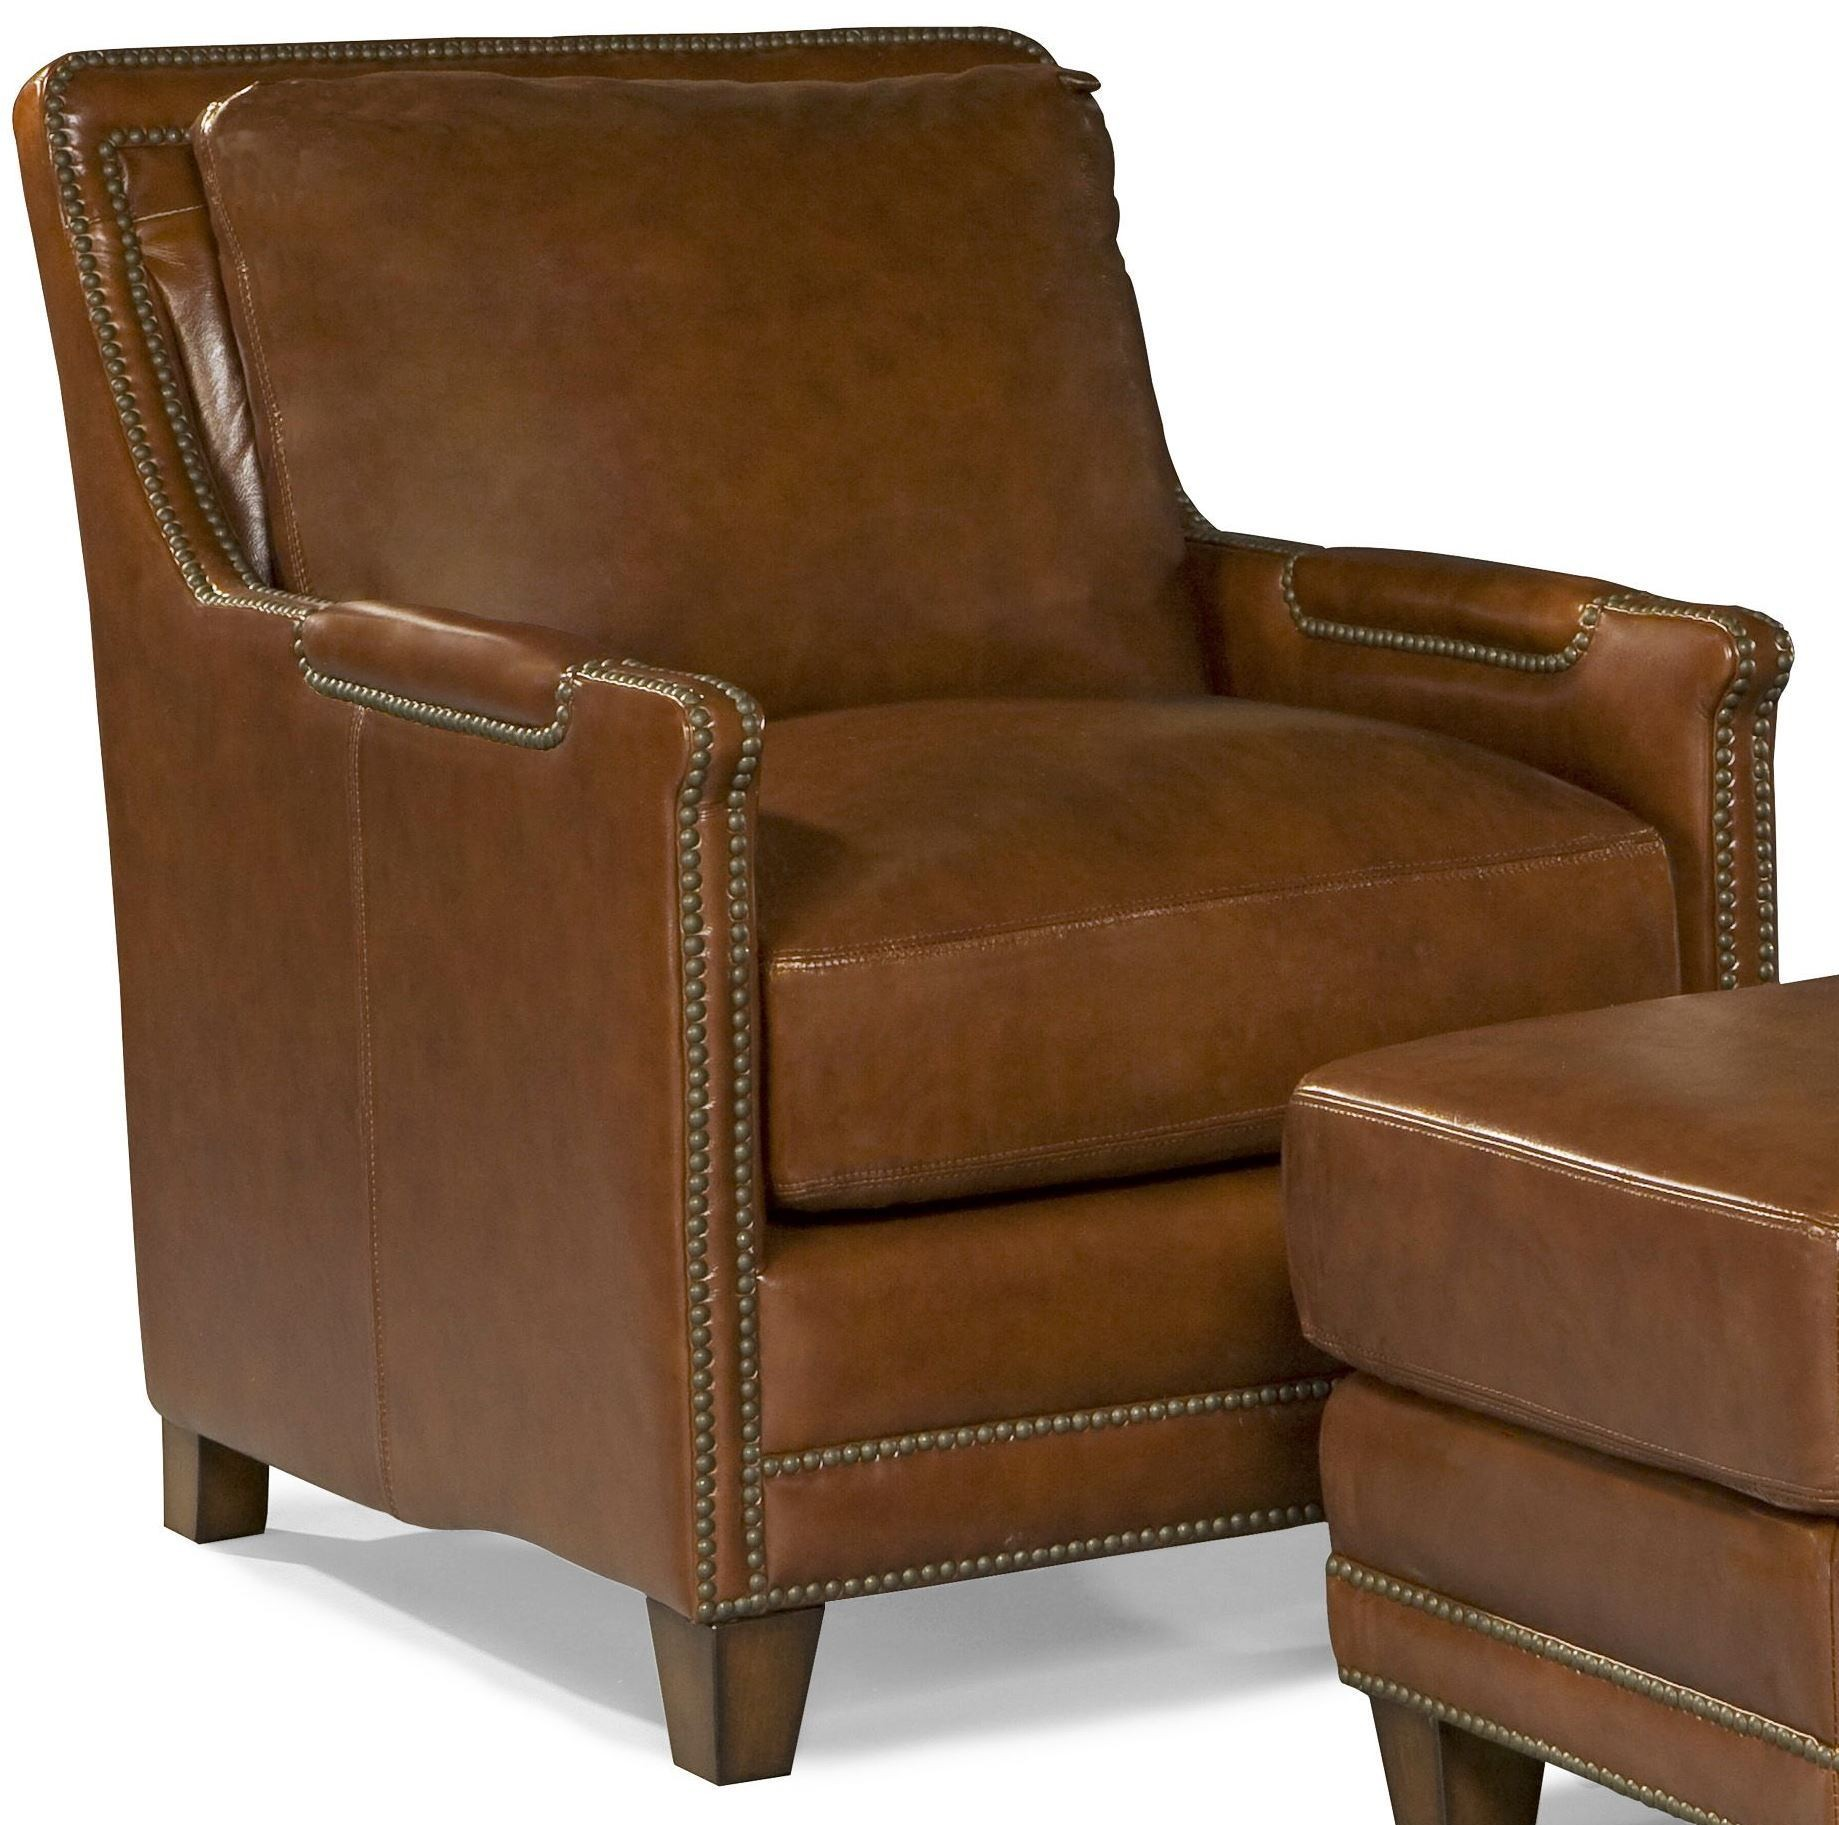 Superieur Prescott Brooklyn Saddle Leather Chair From Spectra Home | Coleman Furniture